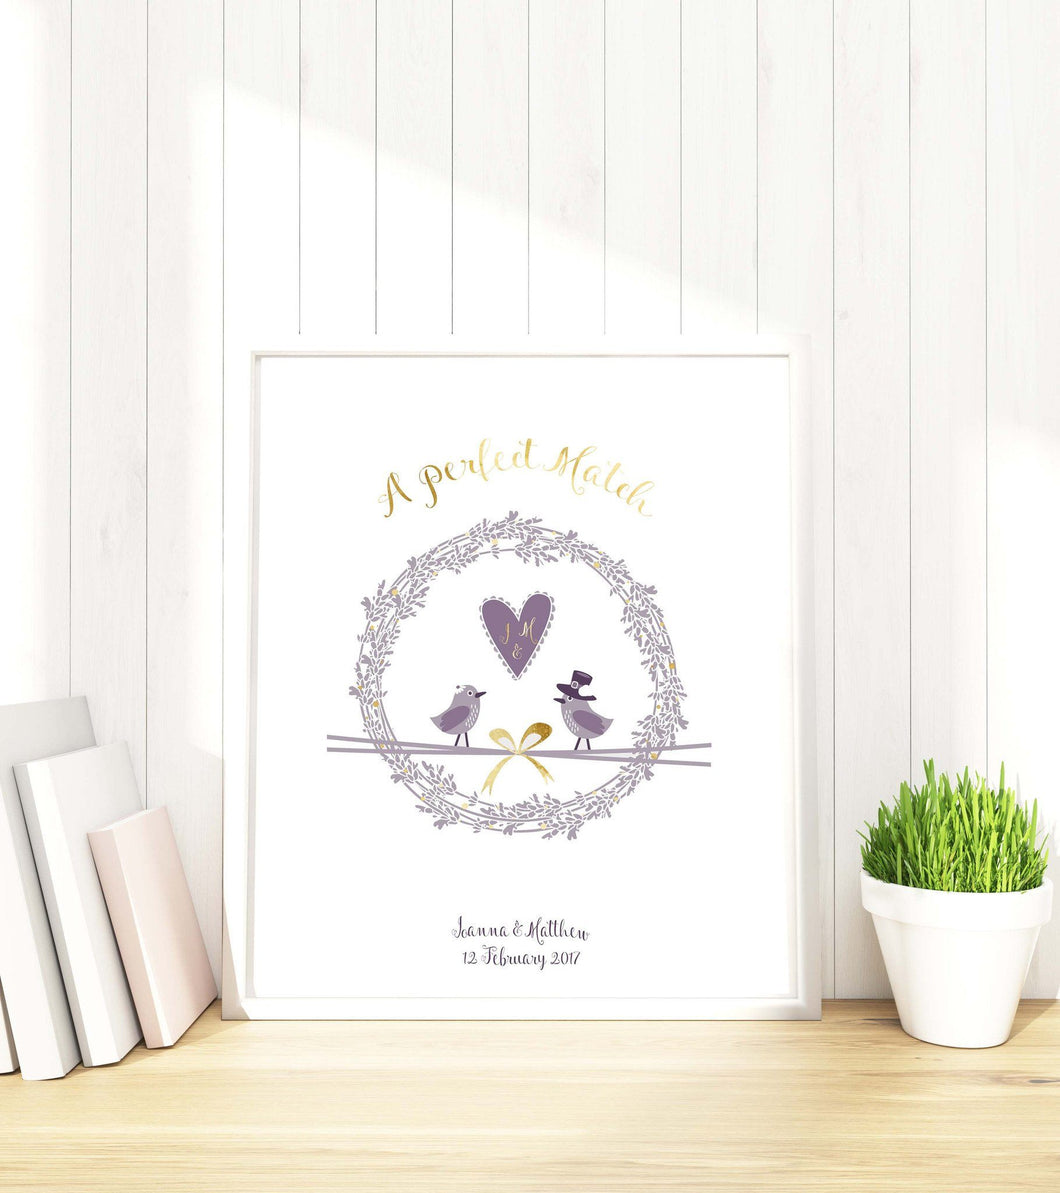 Prints - Personalised Gold Foil Wedding Print - Custom Wedding Gift - A Perfect Match